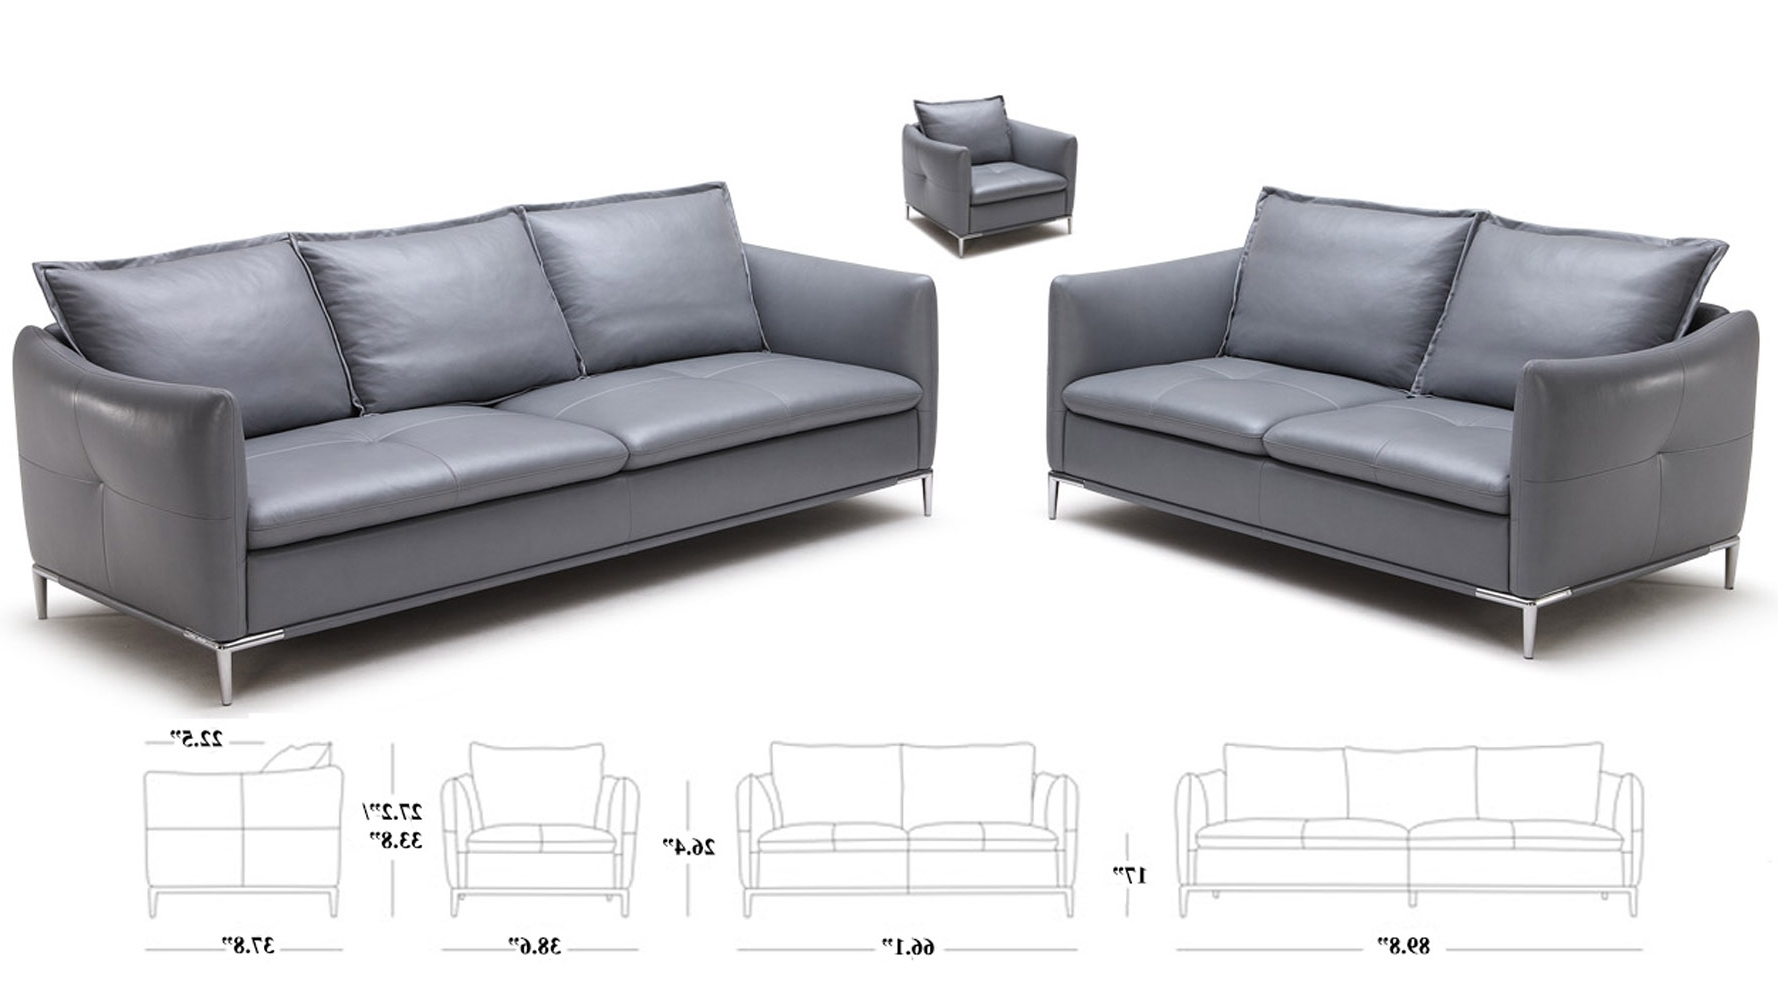 Trendy Bristol Sofas For Grey Bristol Leather Sofa Set With Loveseat And Chair (View 11 of 15)